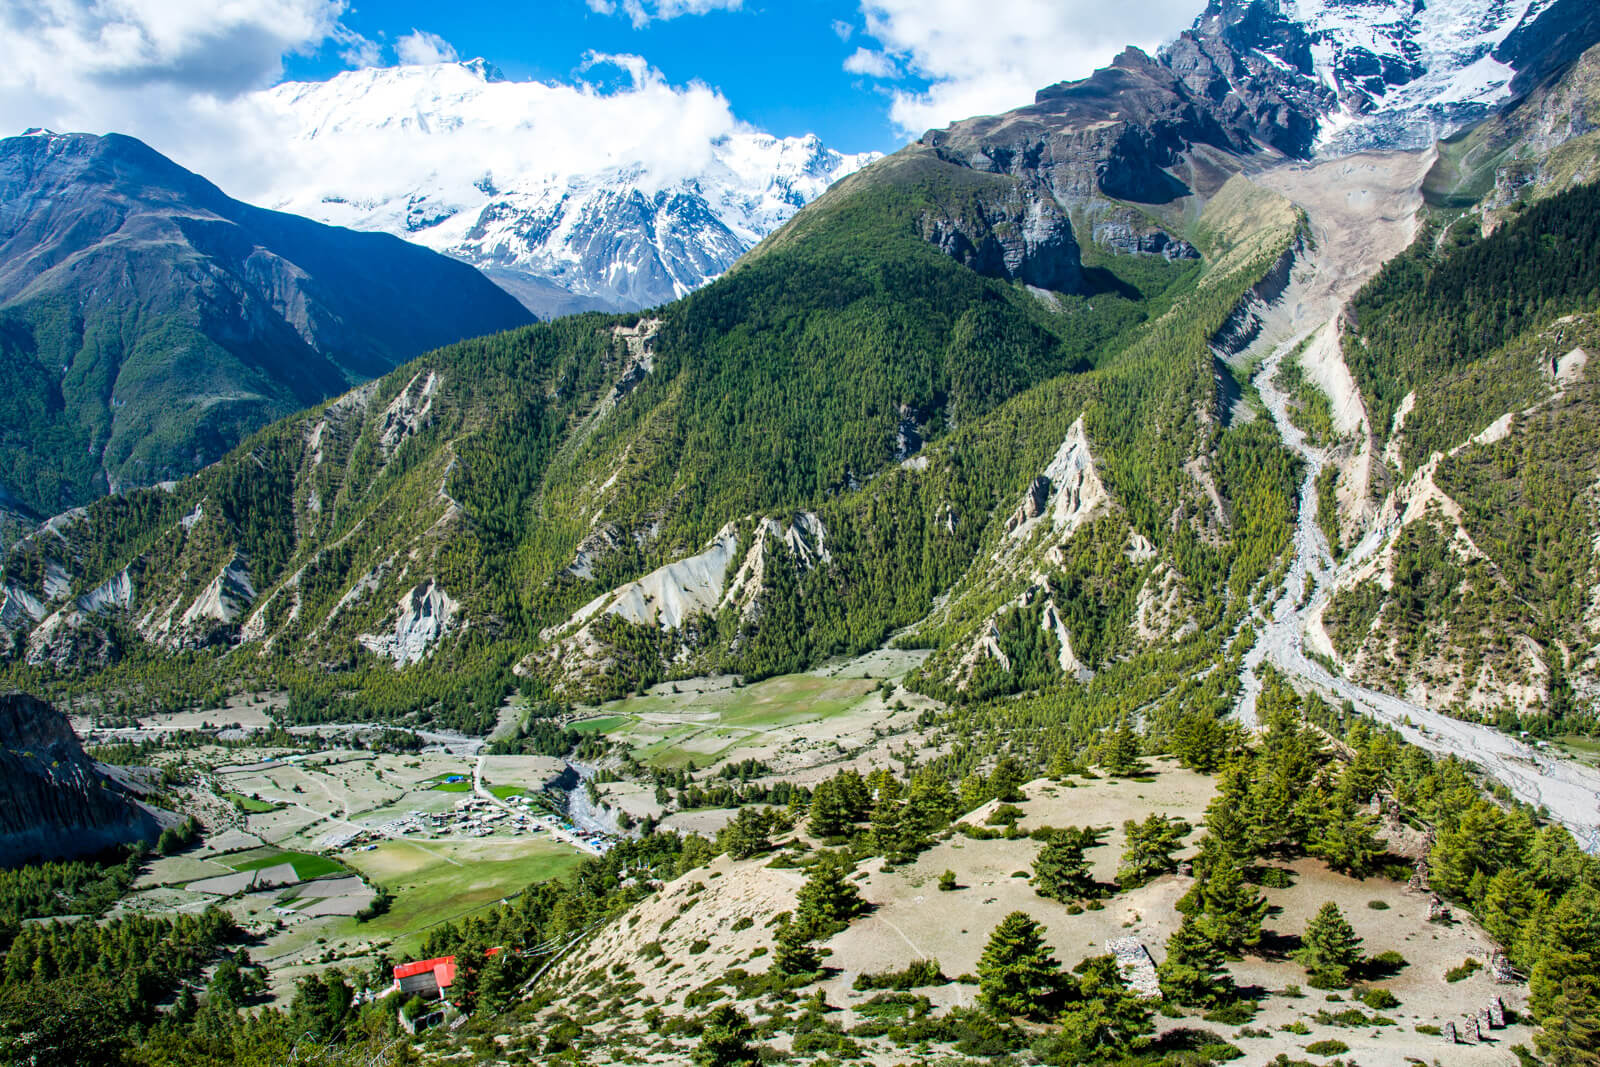 During all the Annapurna Circuit Trek you will be blessed by Views of Wonders